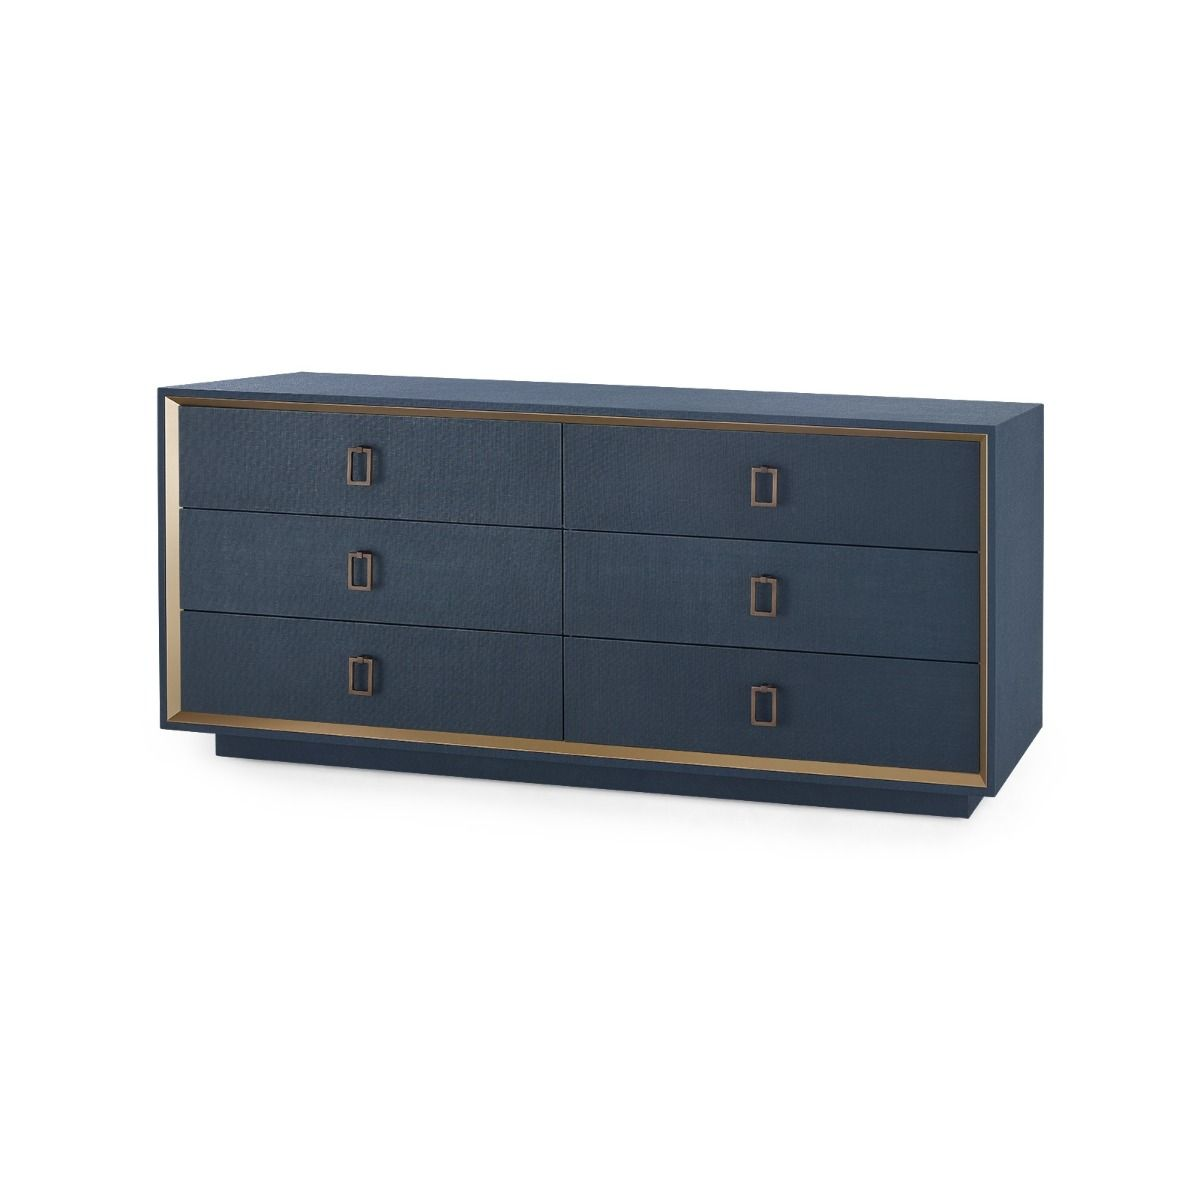 Bungalow 5 - ANSEL EXTRA LARGE 6-DRAWER, NAVY BLUE